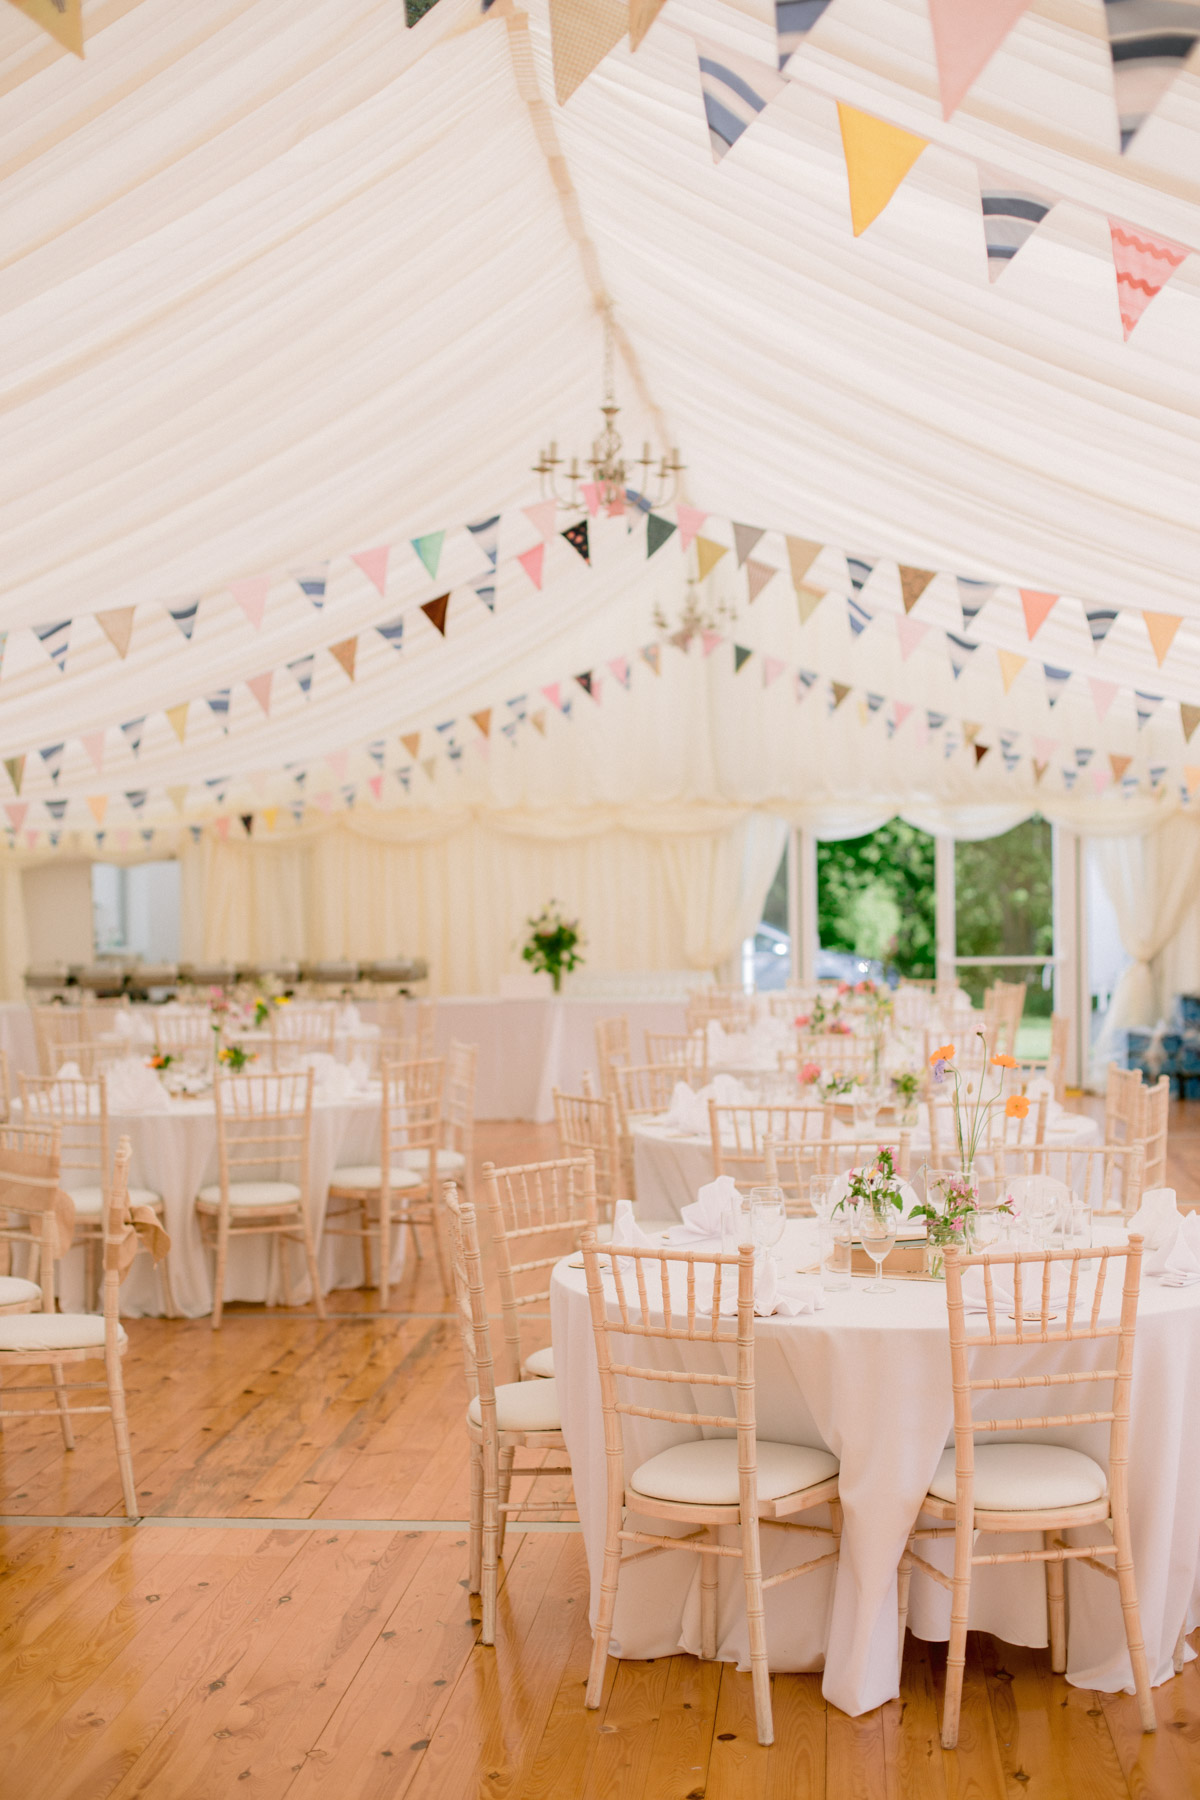 Colourful Marquee Wedding at Paxton House - Scottish Borders Wedding Photography